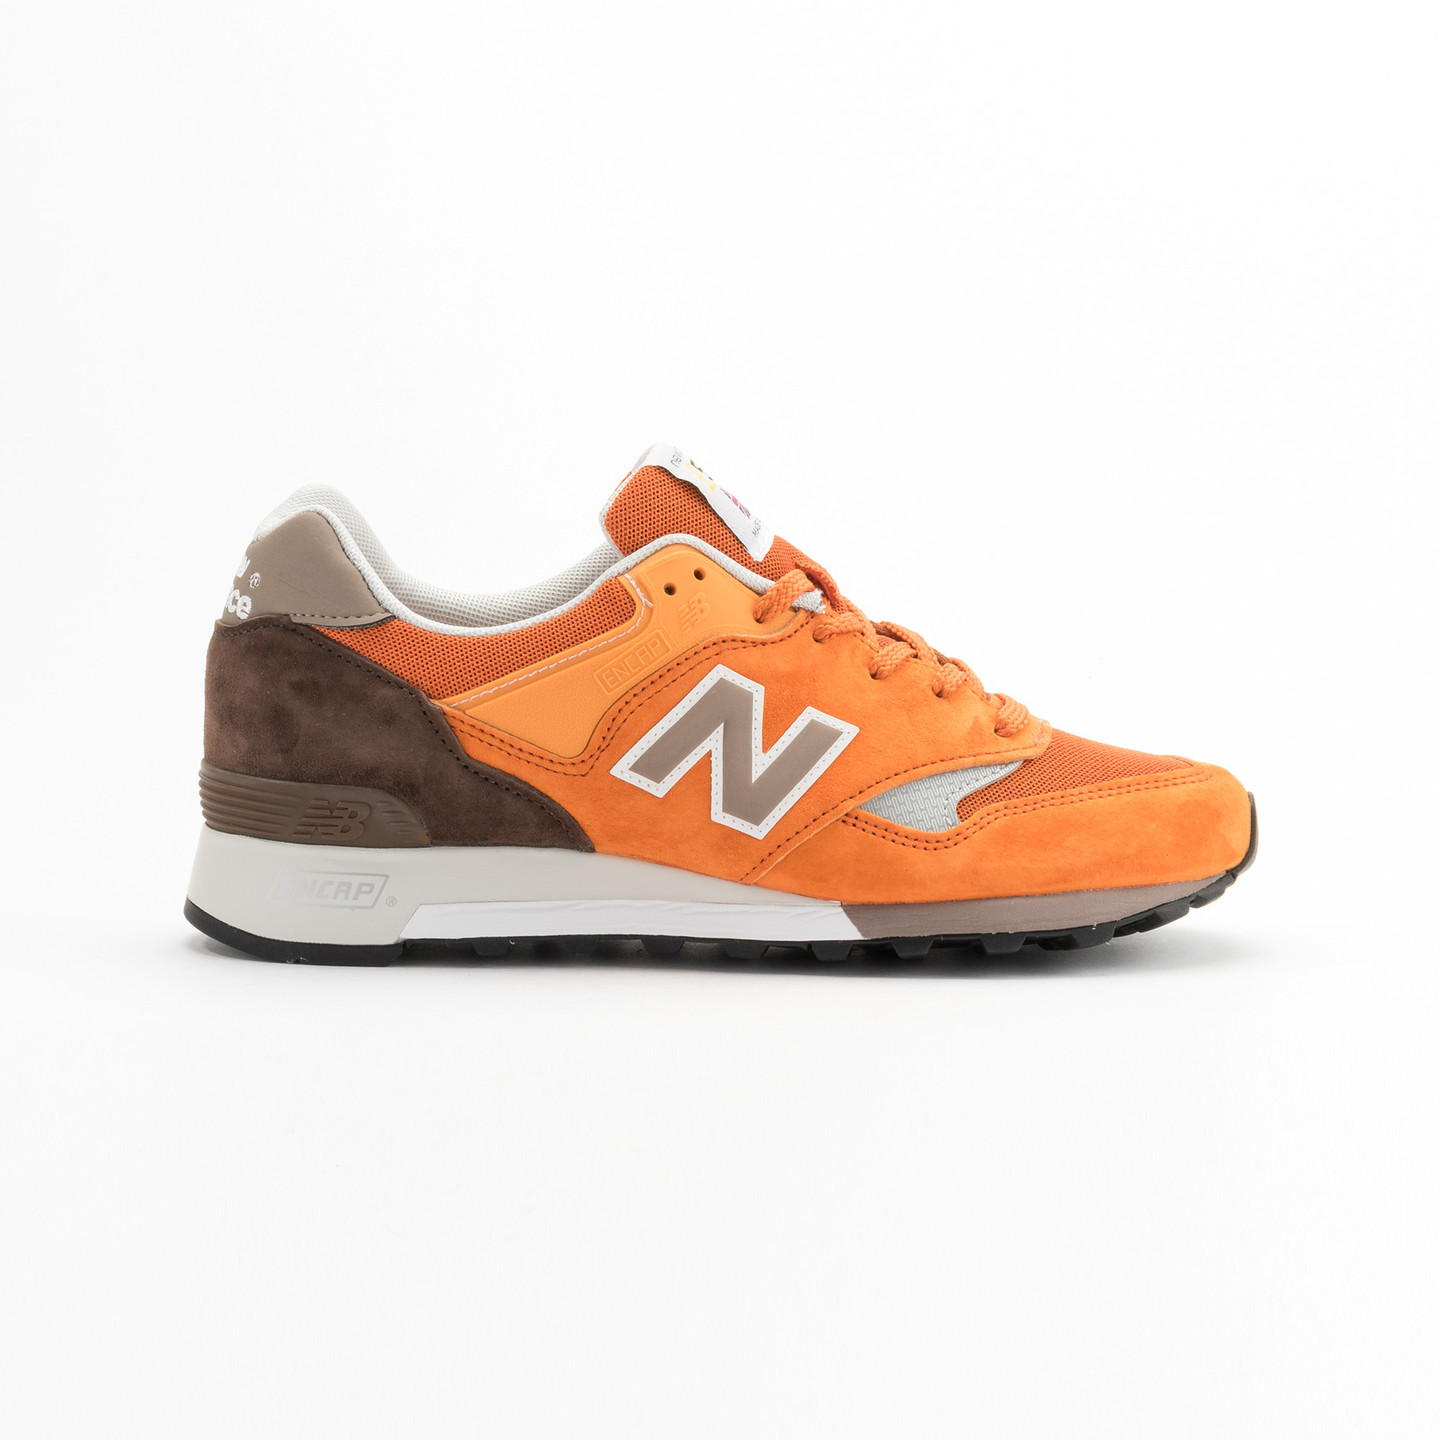 New Balance M577 ETO - Made in England Orange / Brown M577ETO-45.5